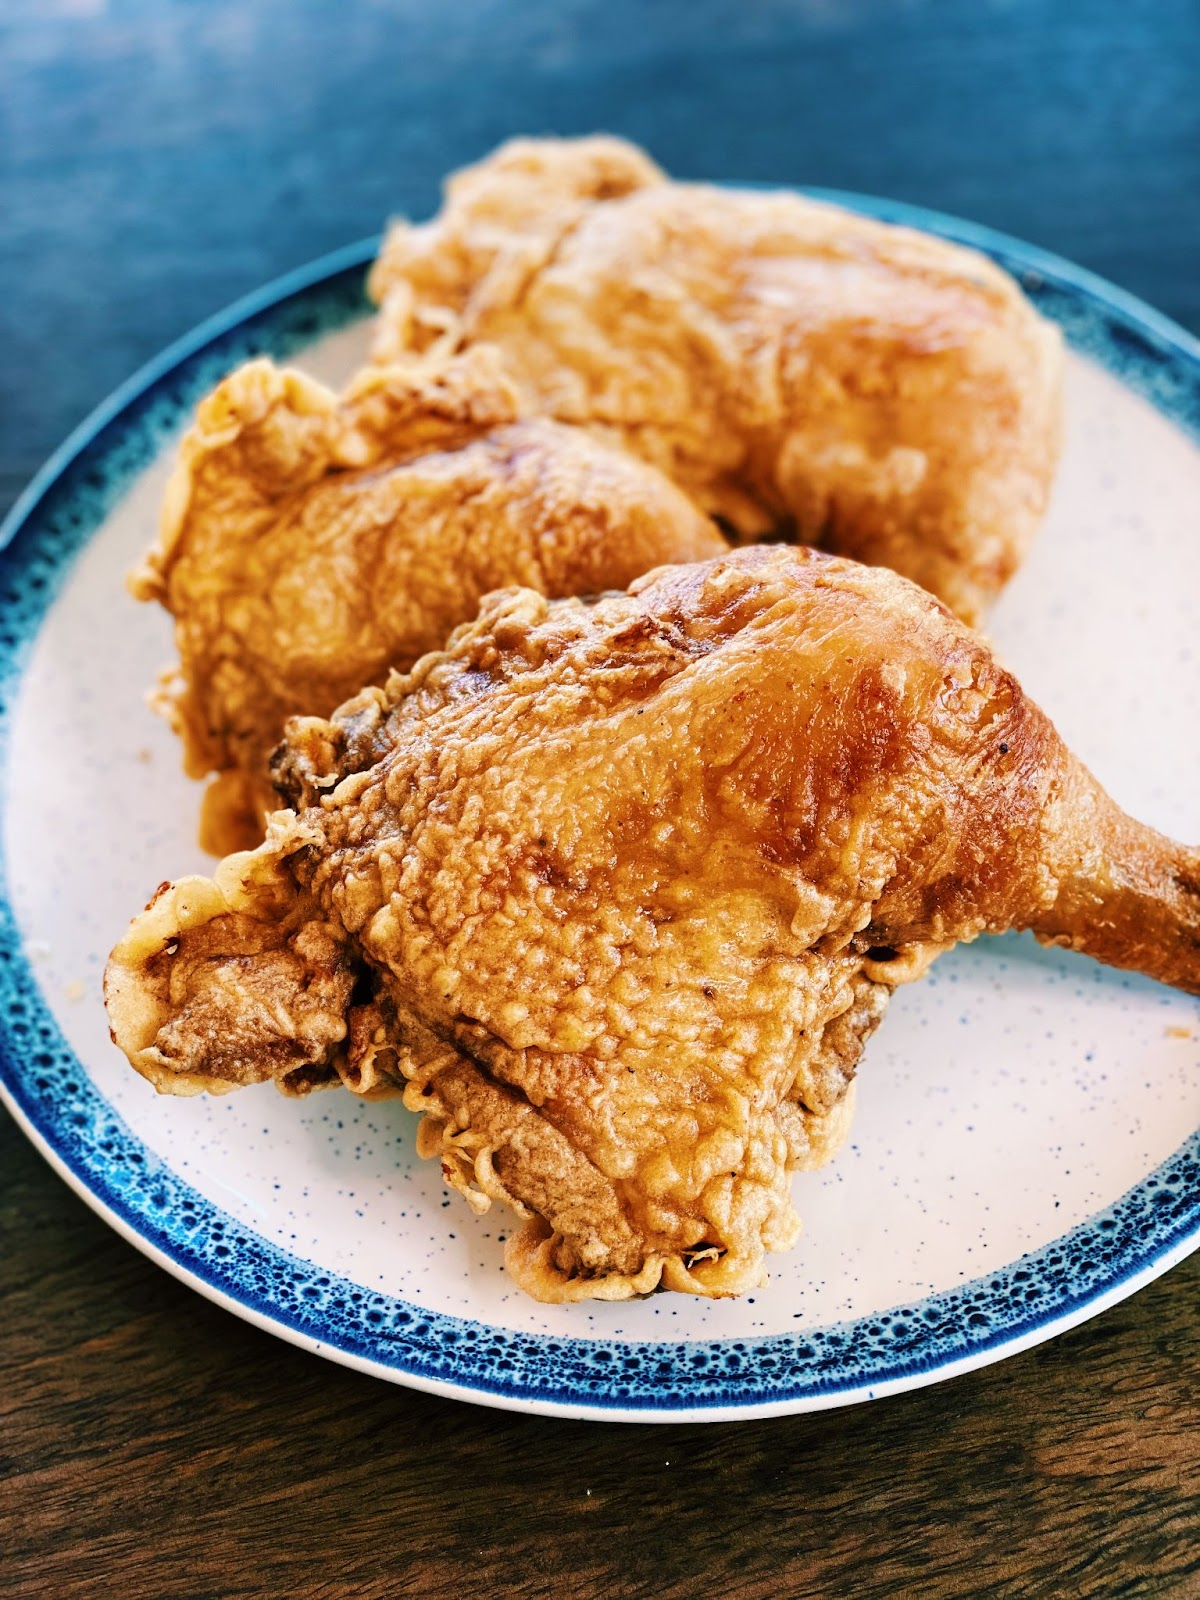 Taiwanese Fried Chicken (Crispy and Light!)